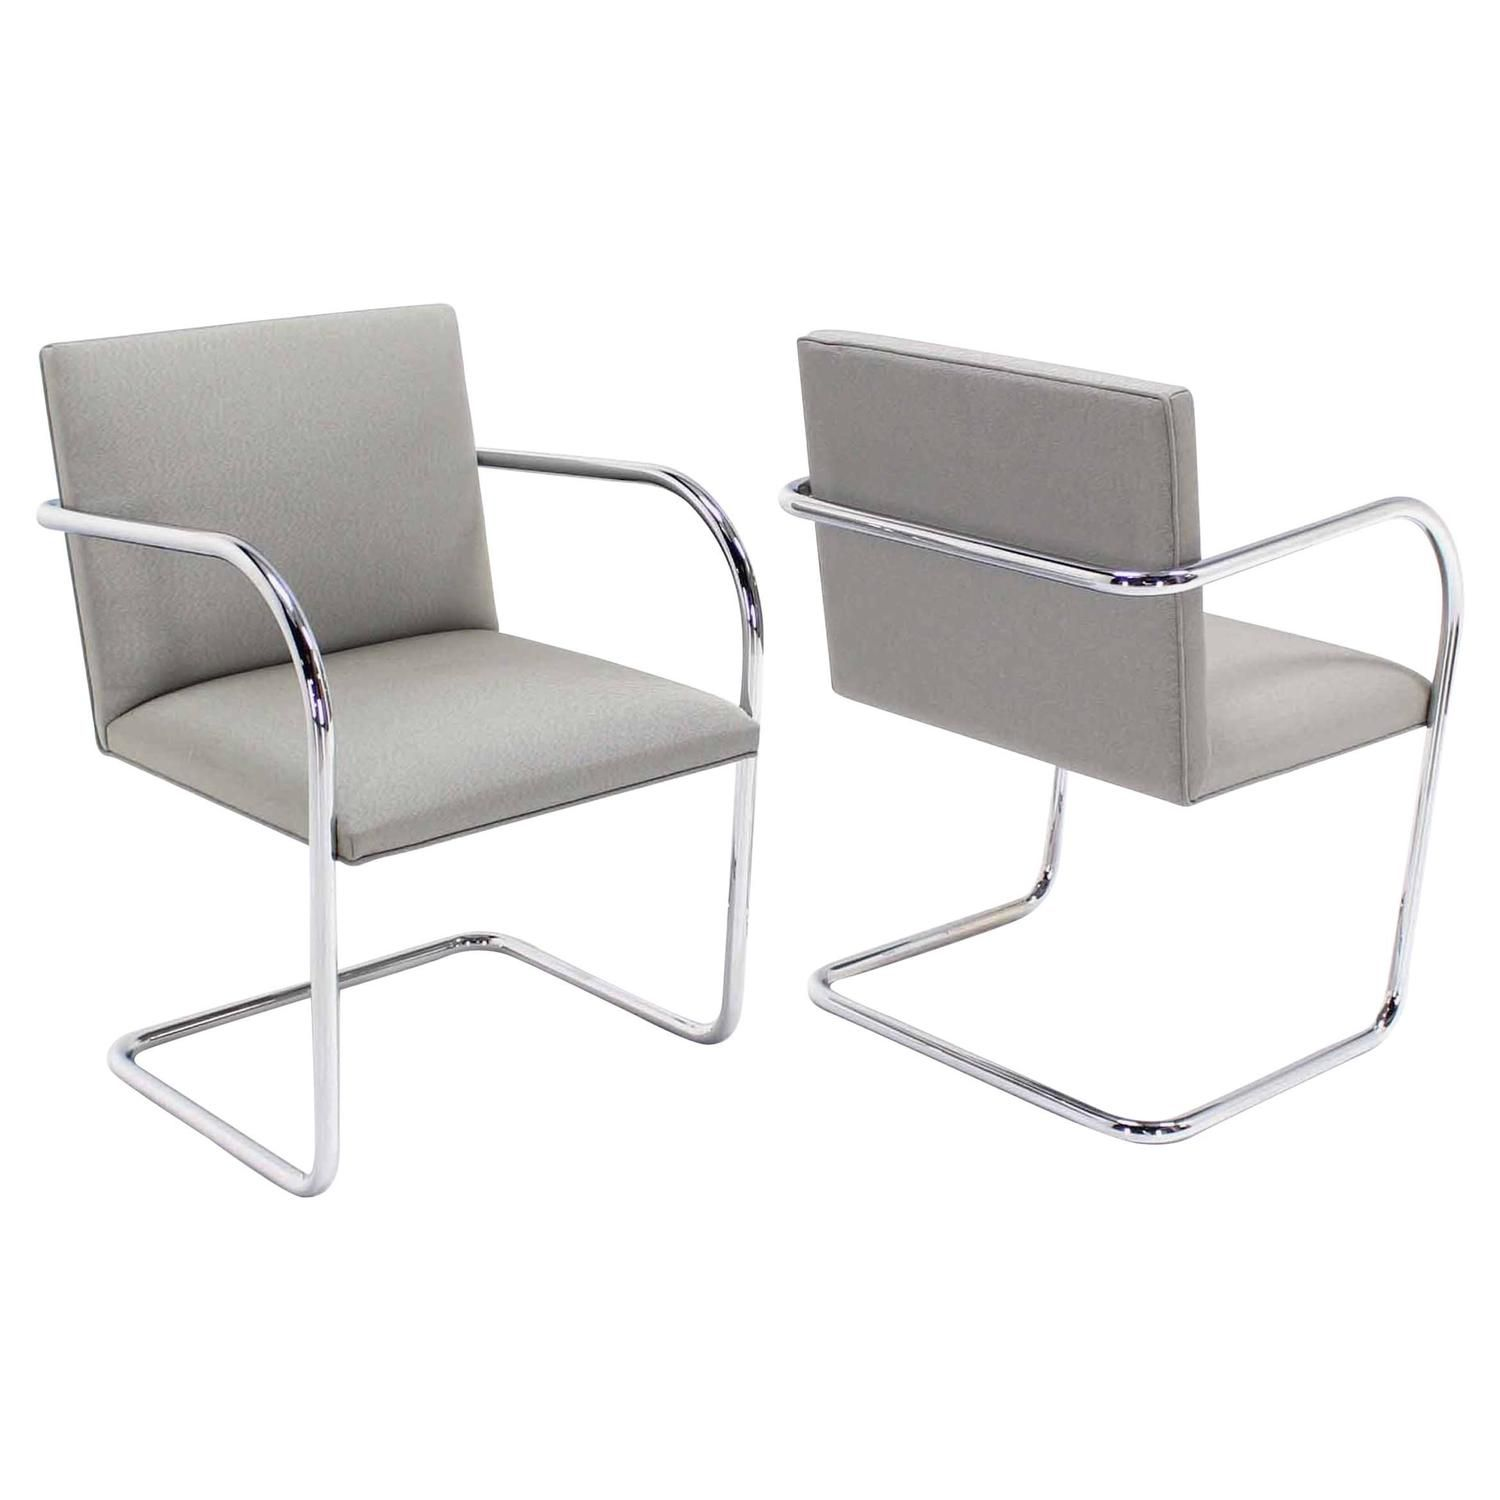 stained saarinen legs shop chairs sturdy available executive finishes wood knoll with in chair